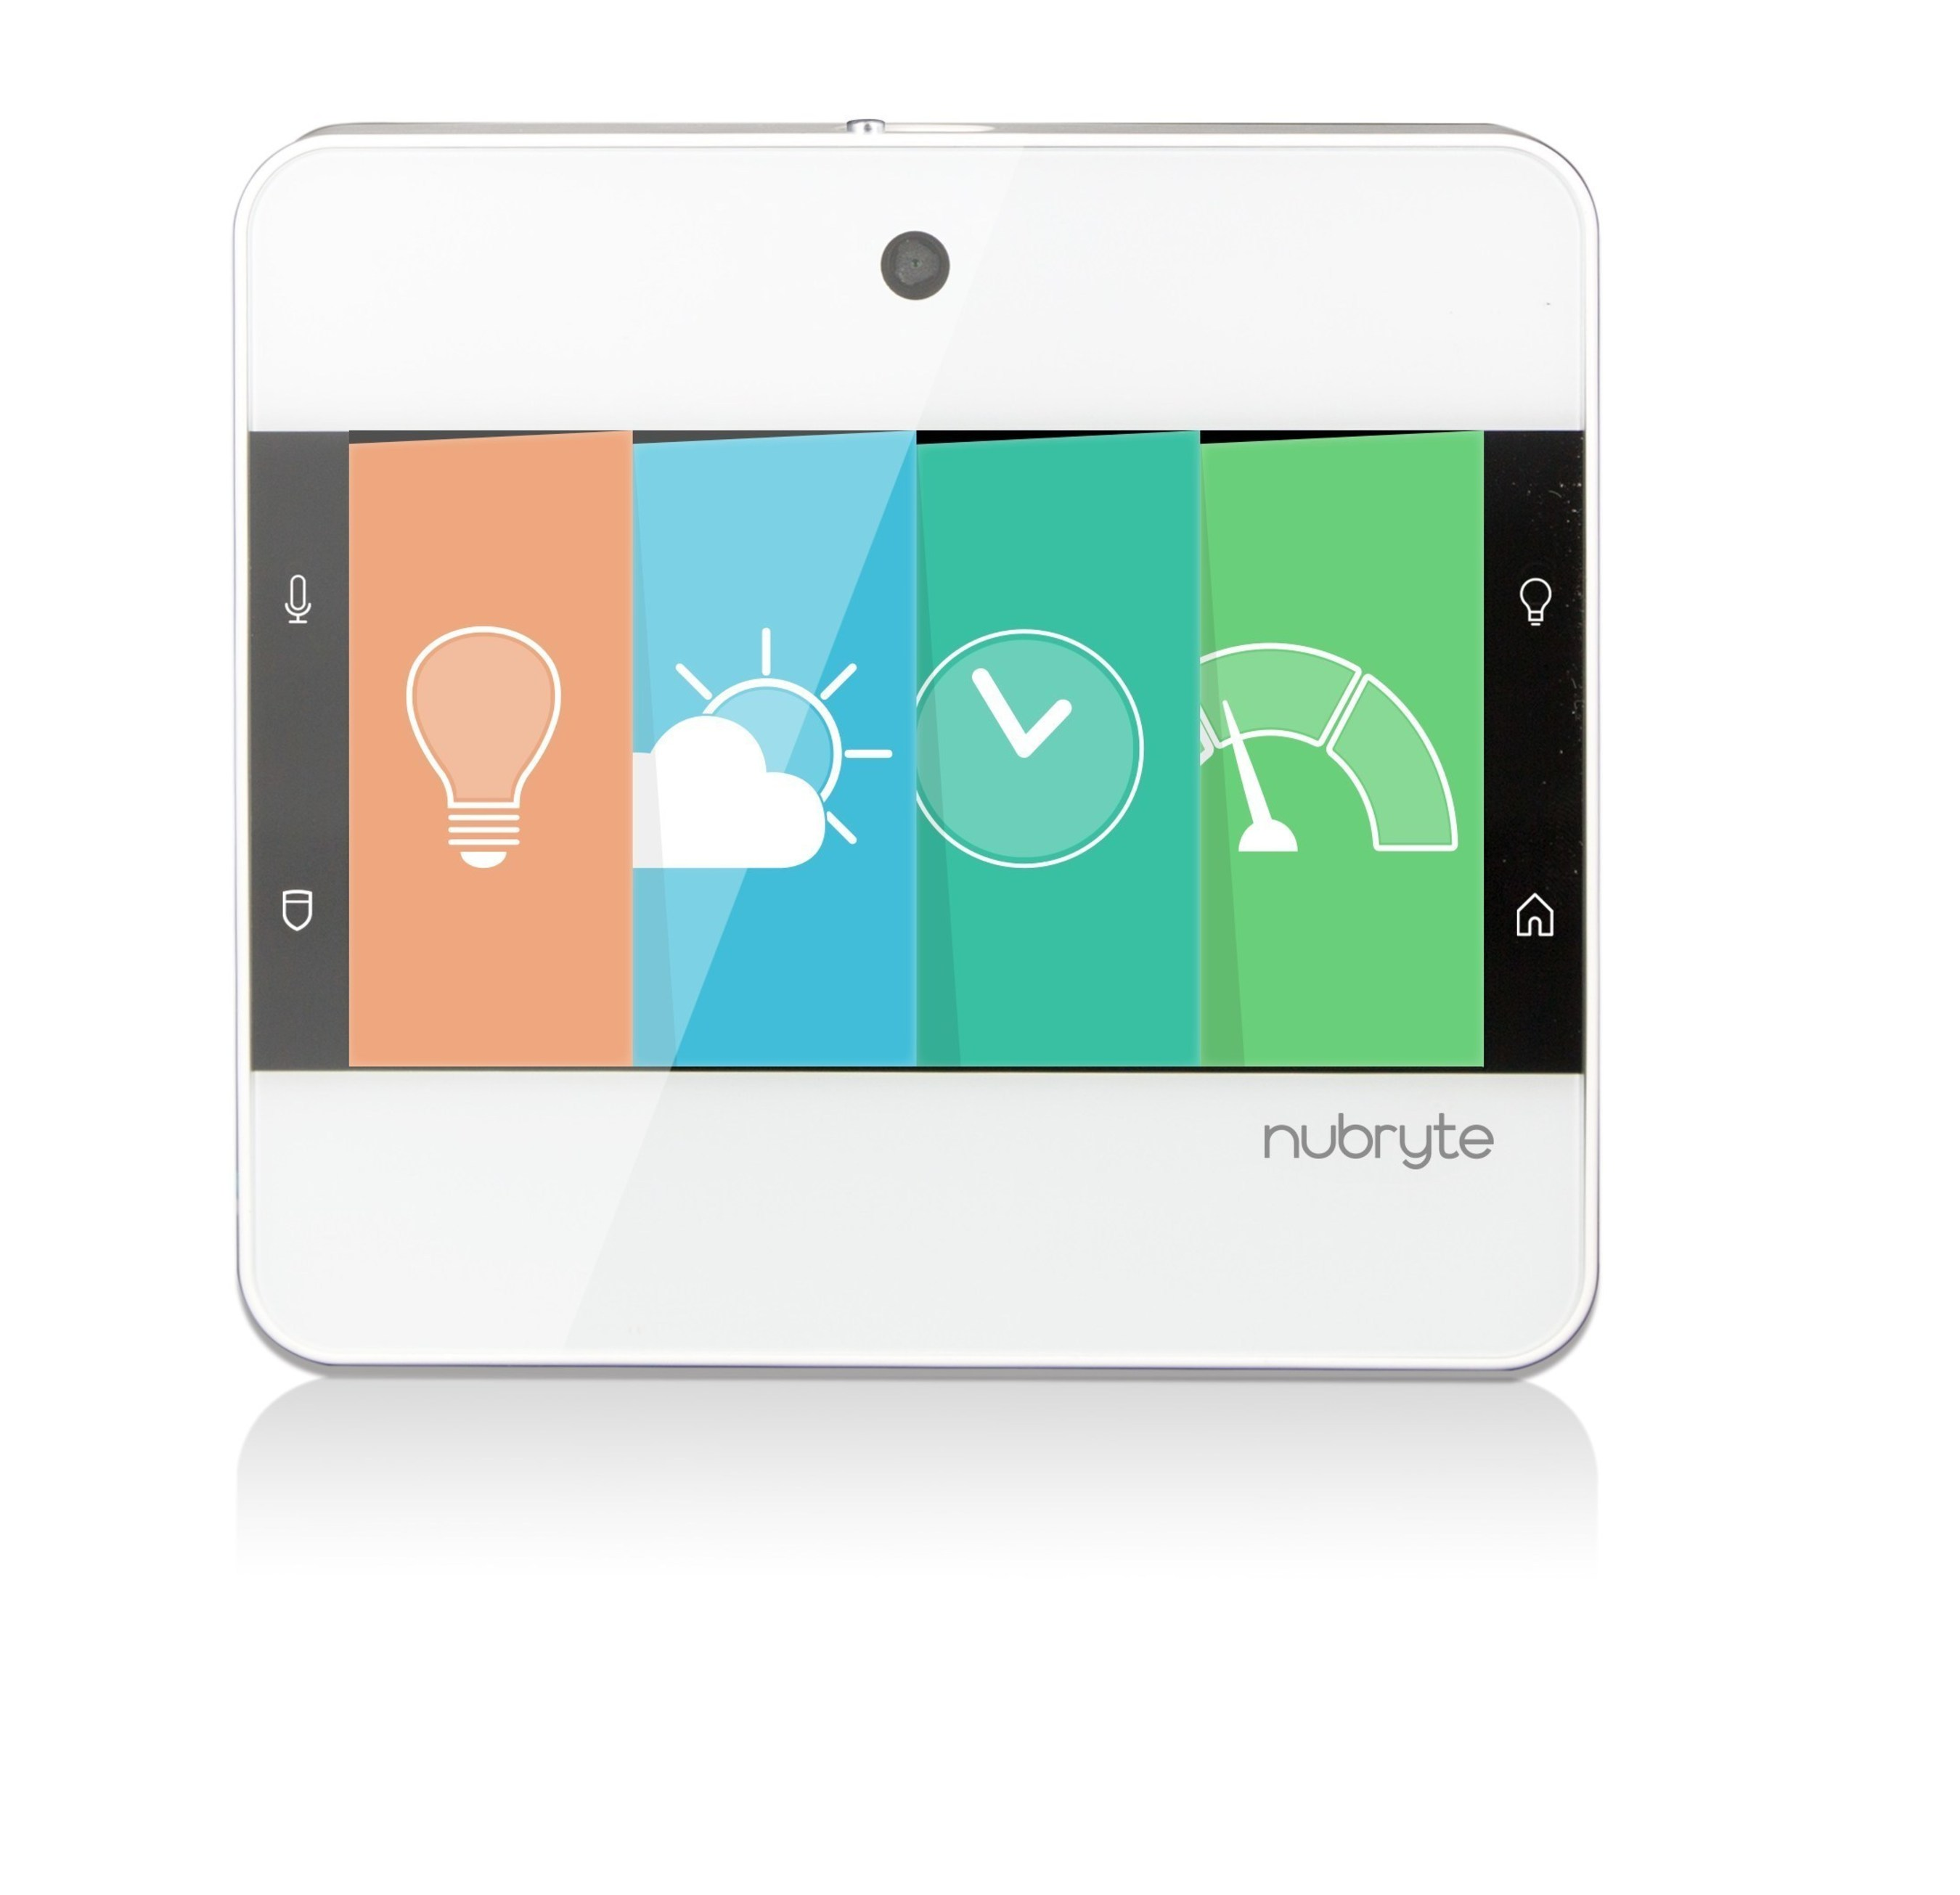 "Say goodbye to ""gadget clutter"". NuBryte Touchpoint is a compact, all-in-one smart security and home automation solution - everything you need, right at the light switch."